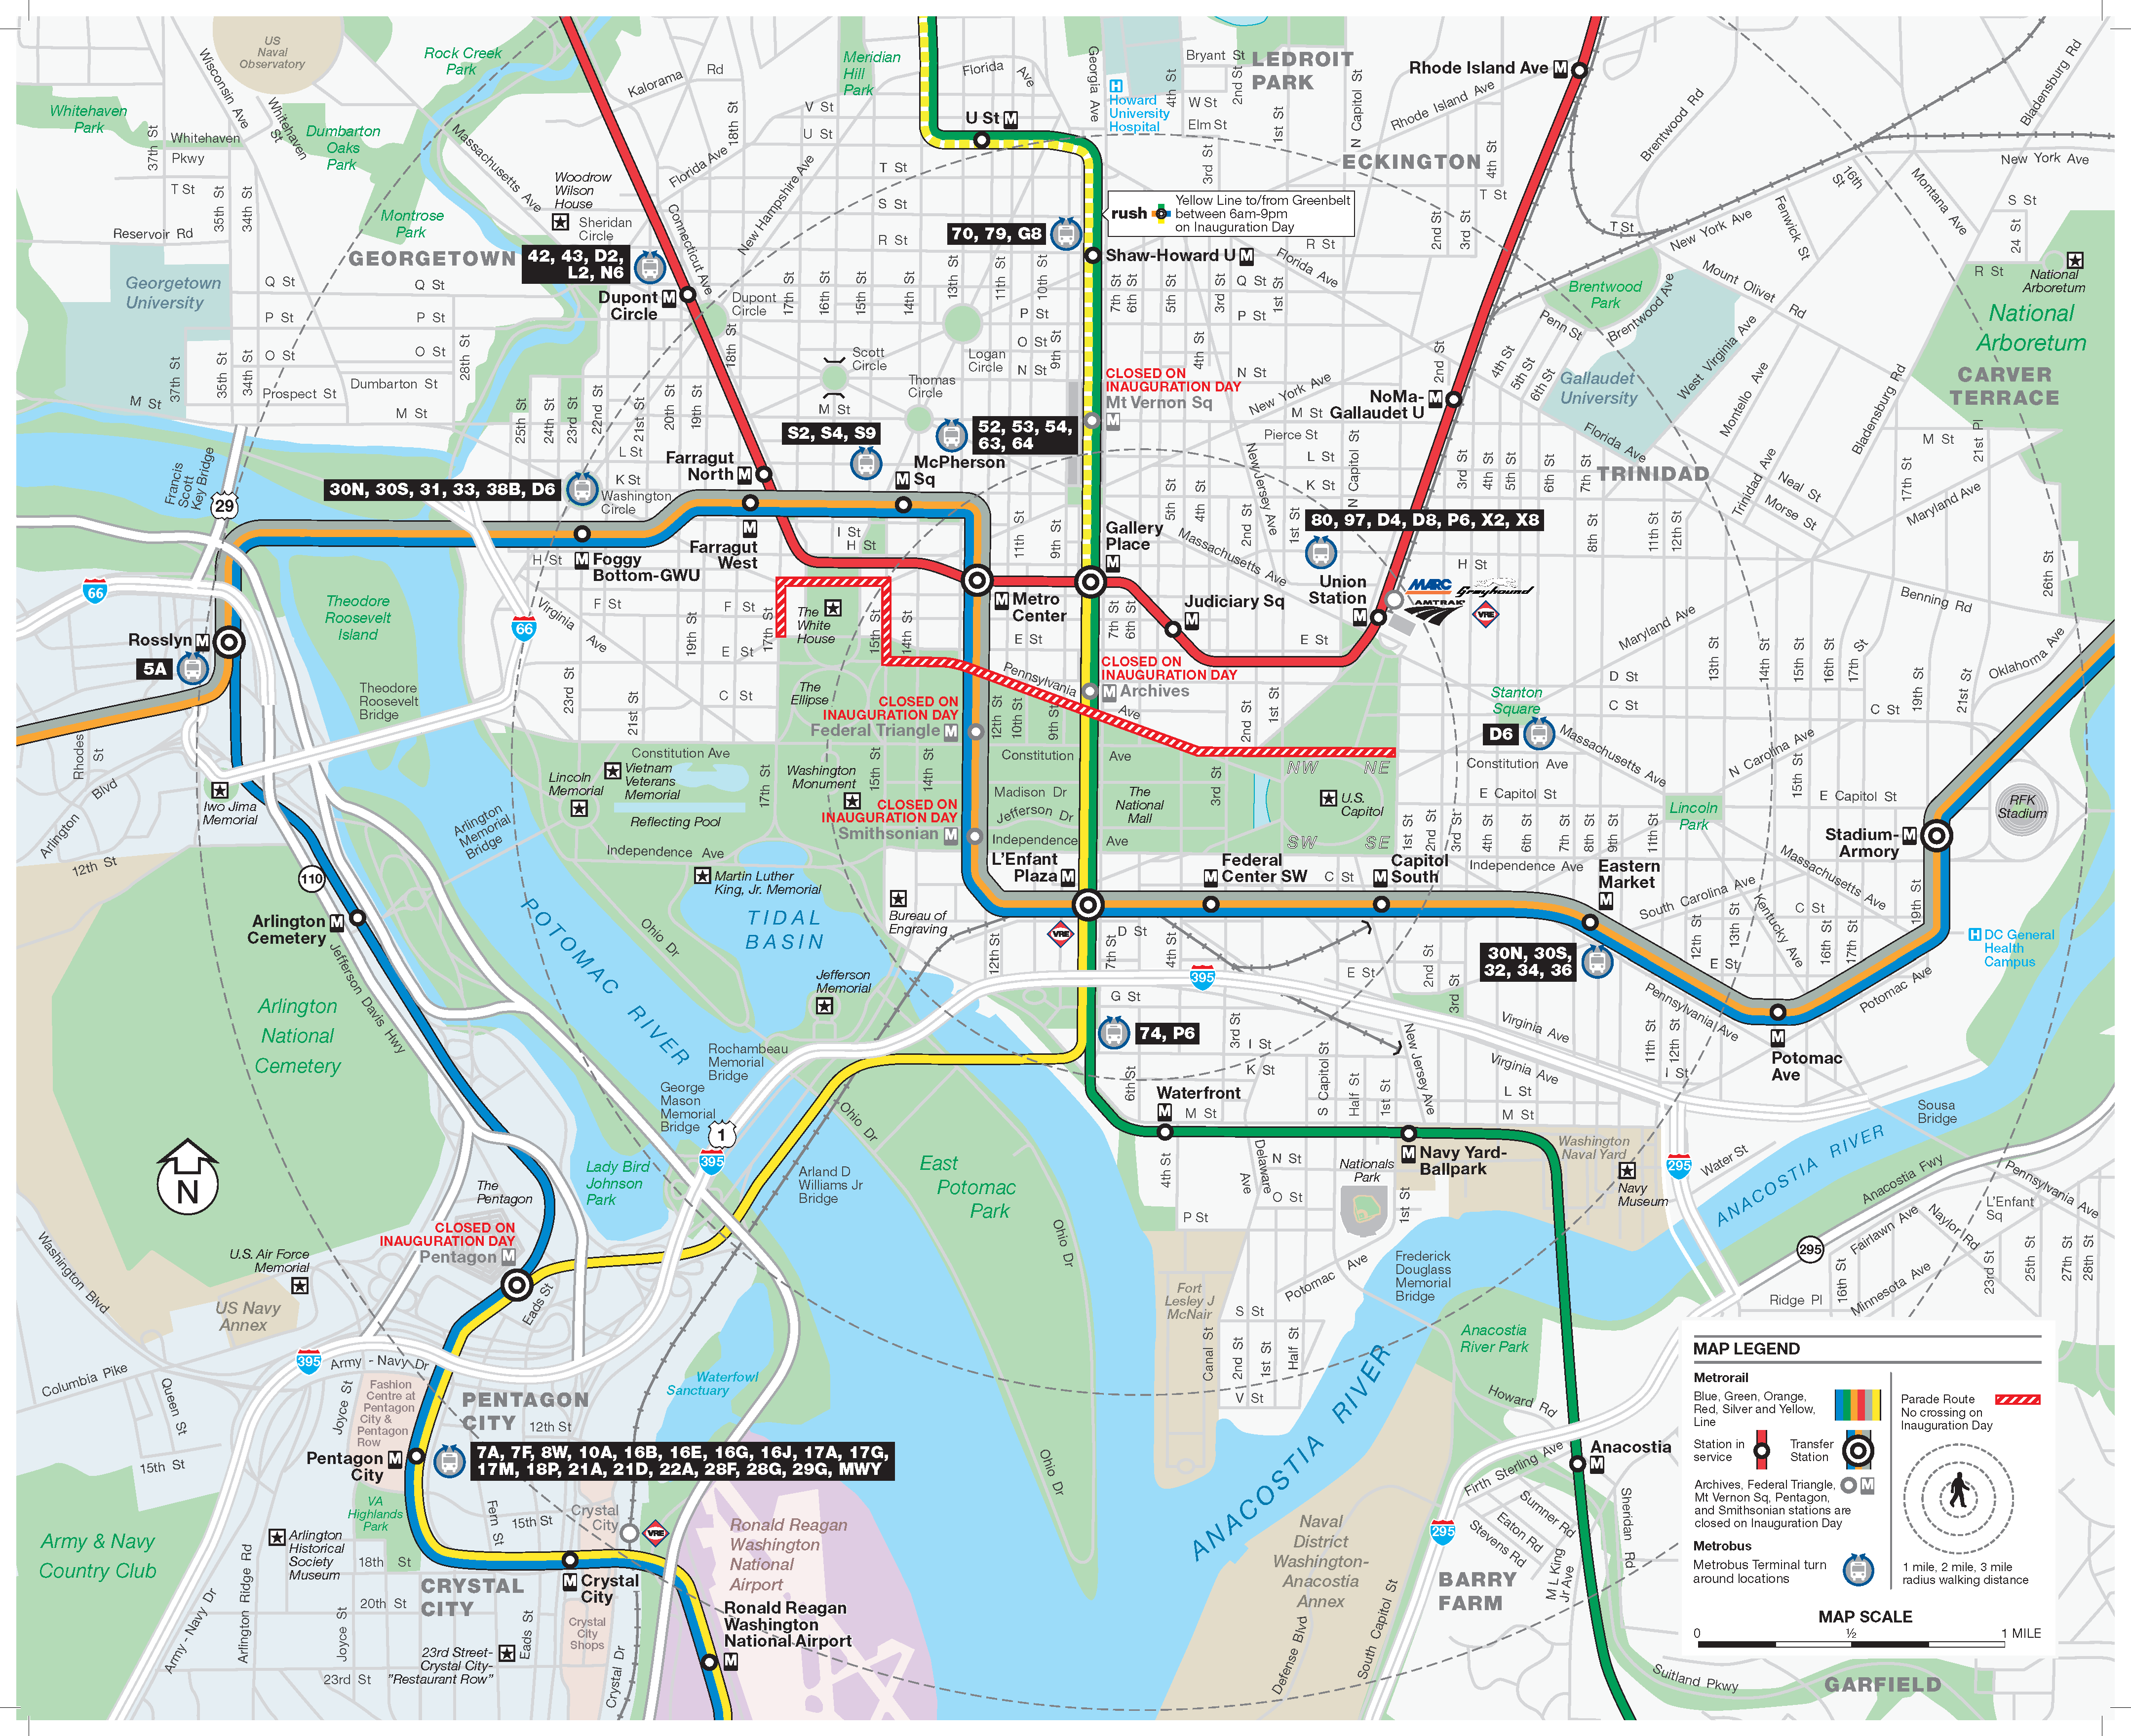 Inauguration Day Service Information WMATA - Washington dc silver line map